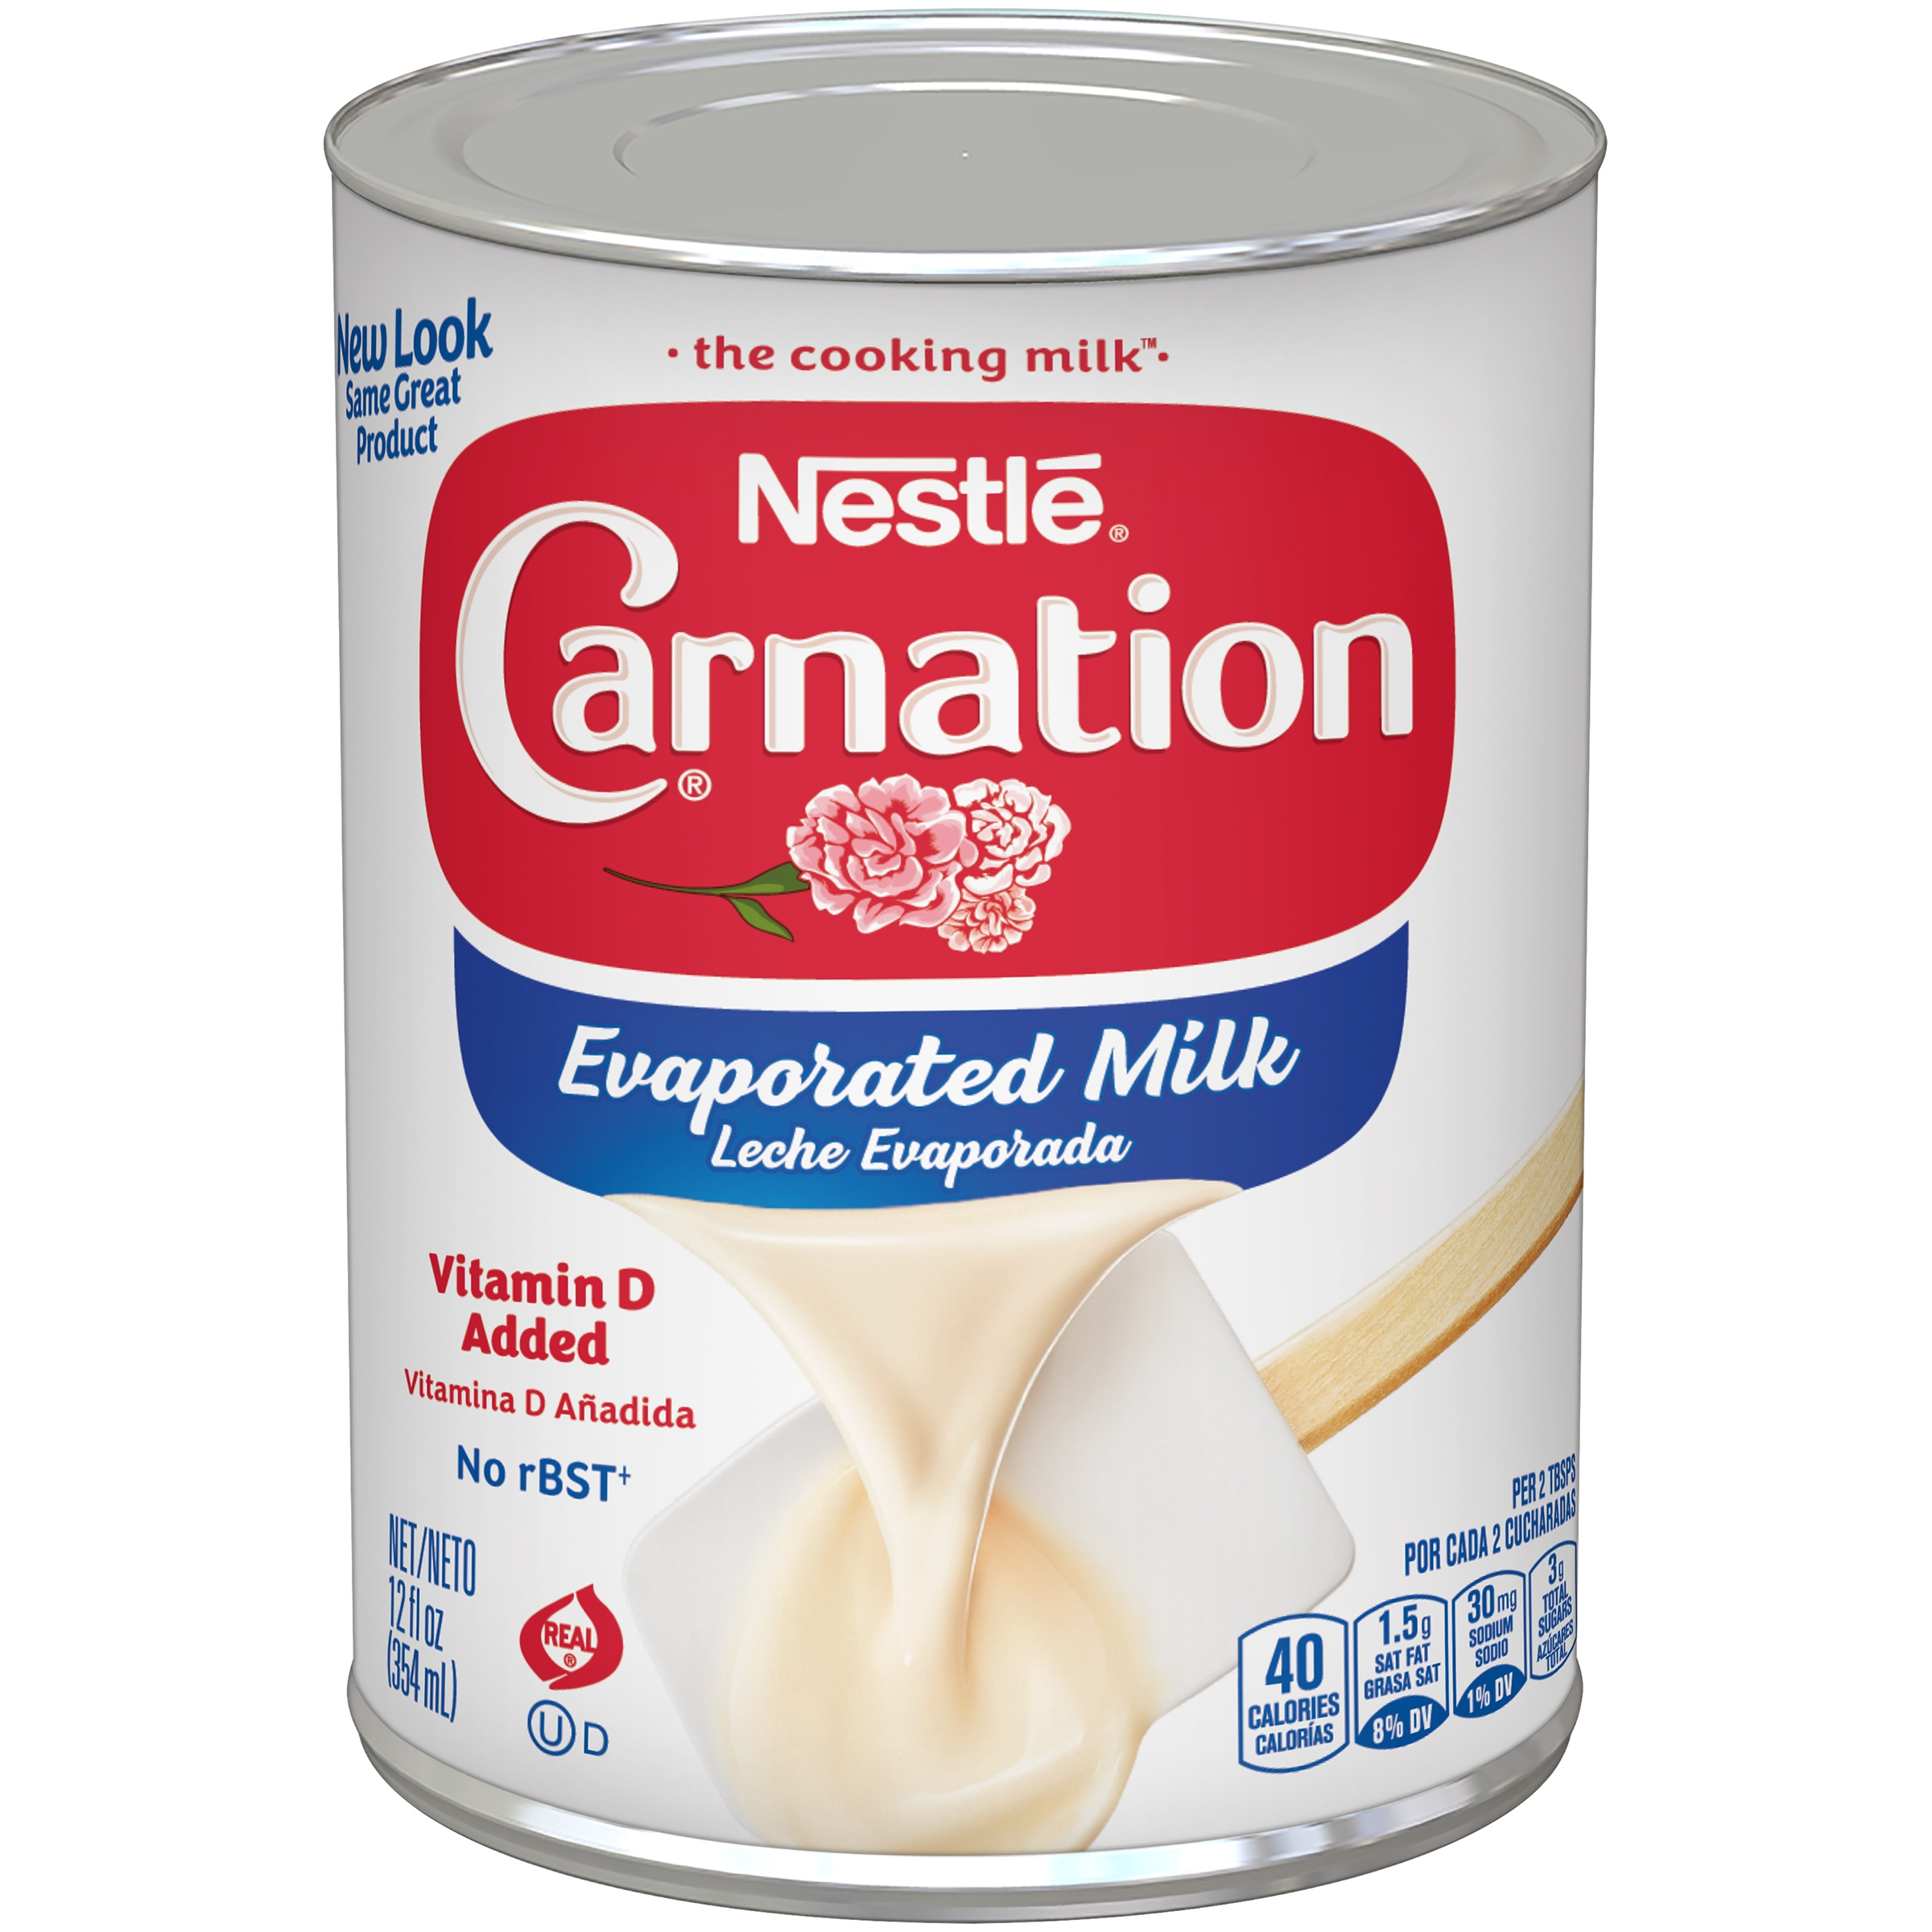 CARNATION Vitamin D Added Evaporated Milk, 12 fl oz Can